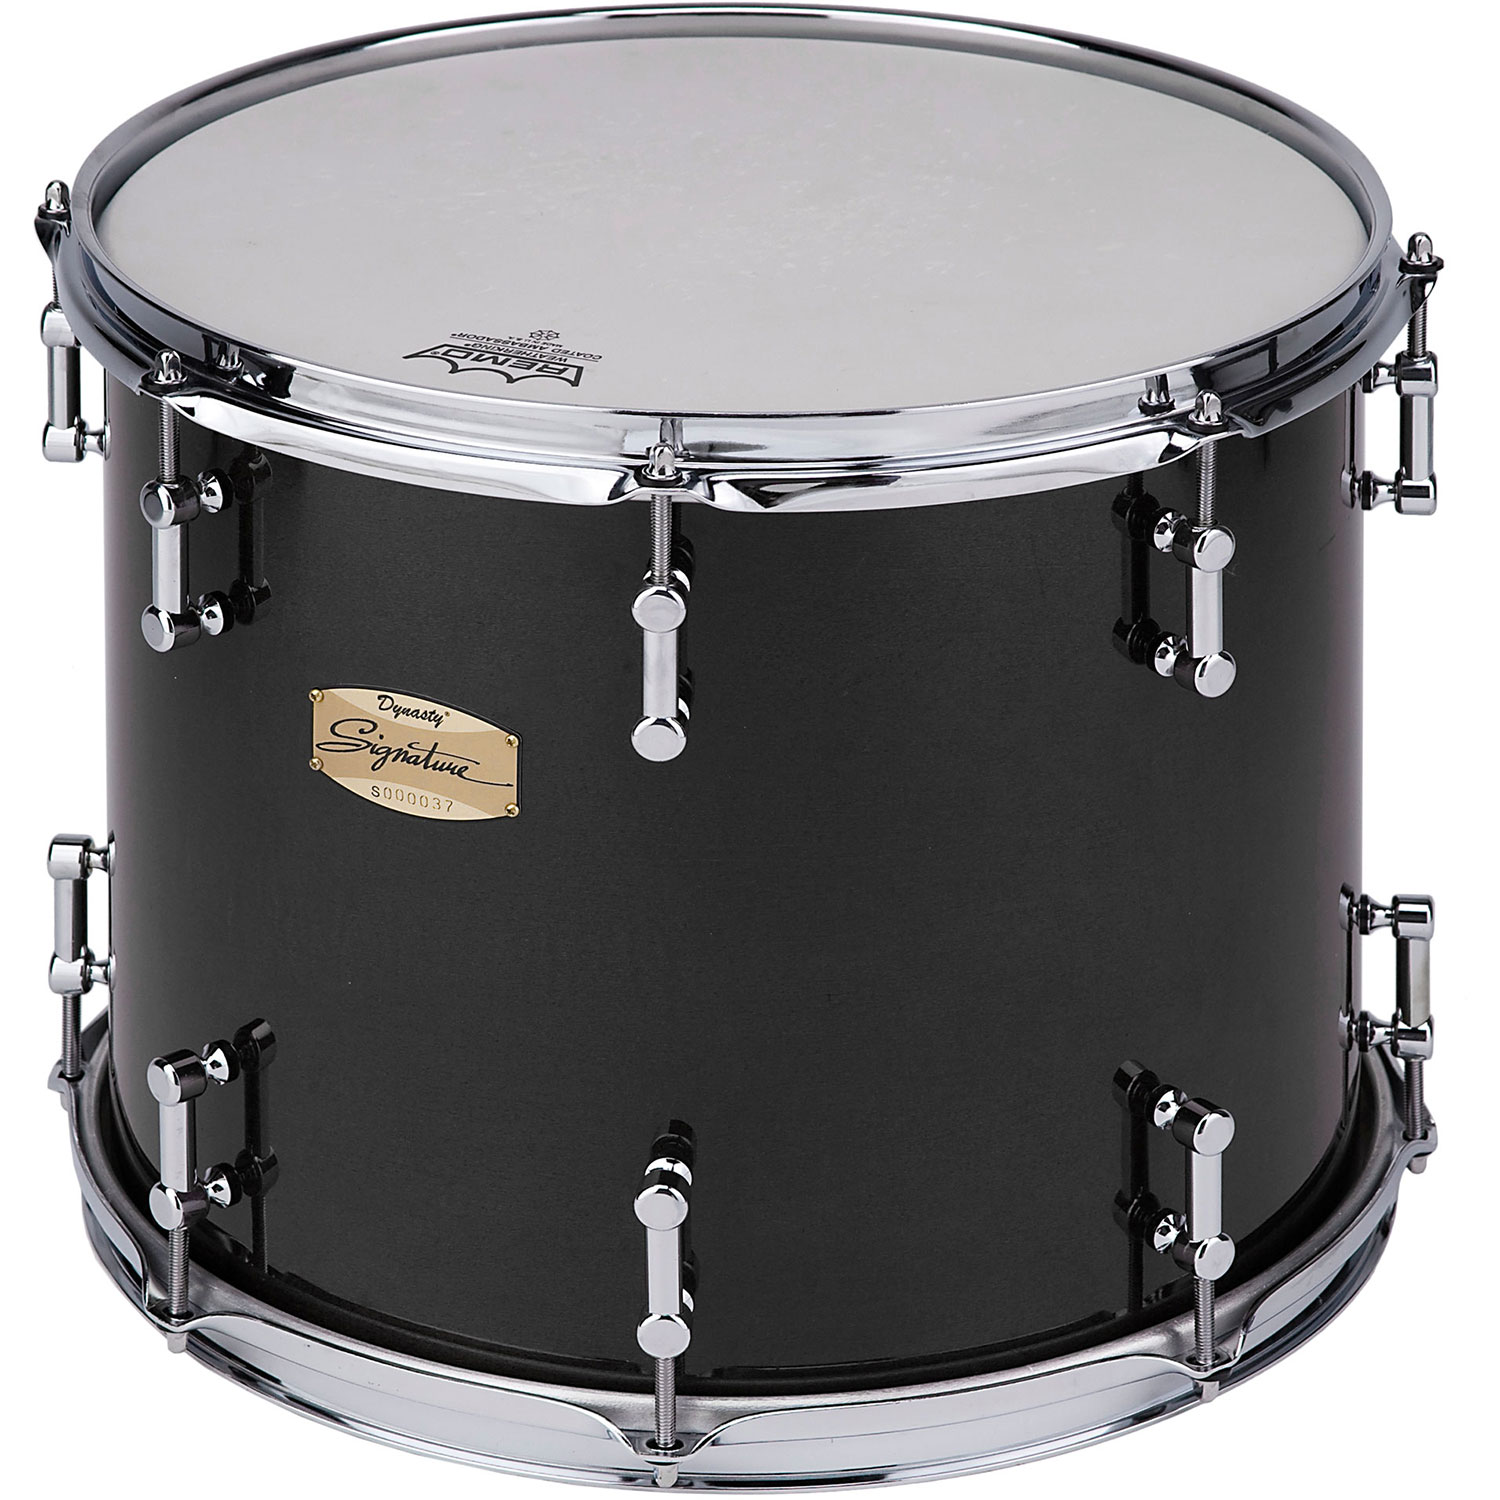 "Dynasty 15"" (Diameter) x 14"" (Deep) Performance Series Double Headed Concert Tom"